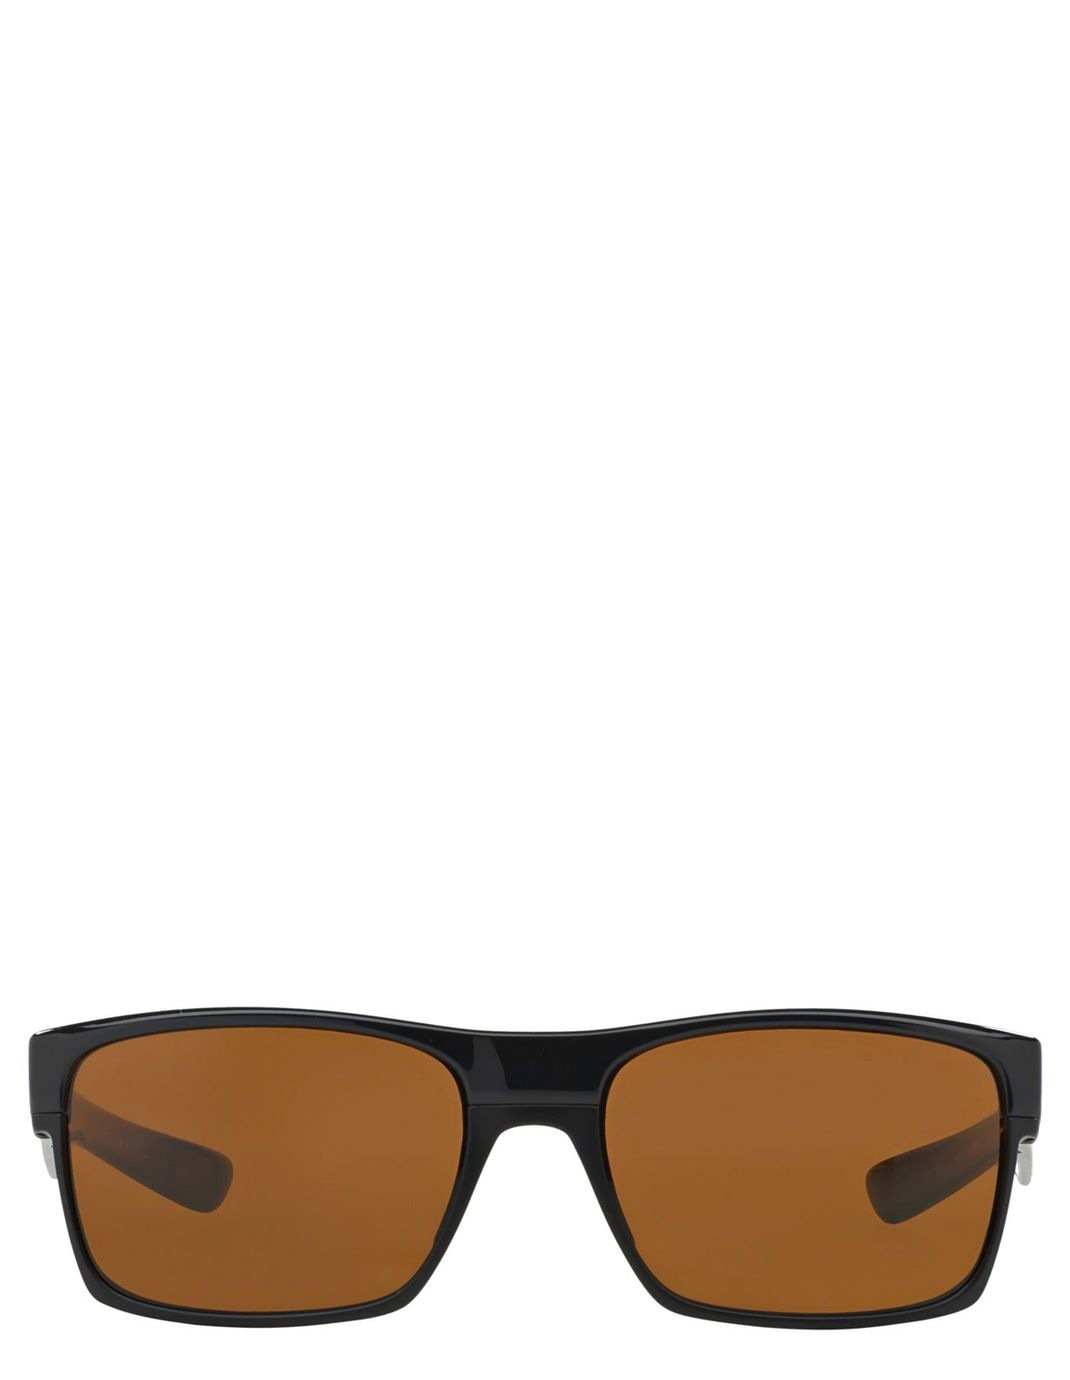 b3133ecace668 australia oakley two face xl polished brown tortoise dark bronze fashion  sunglasses 57922 a6964  order oakley twoface sunglasses myer online ea226  32e95